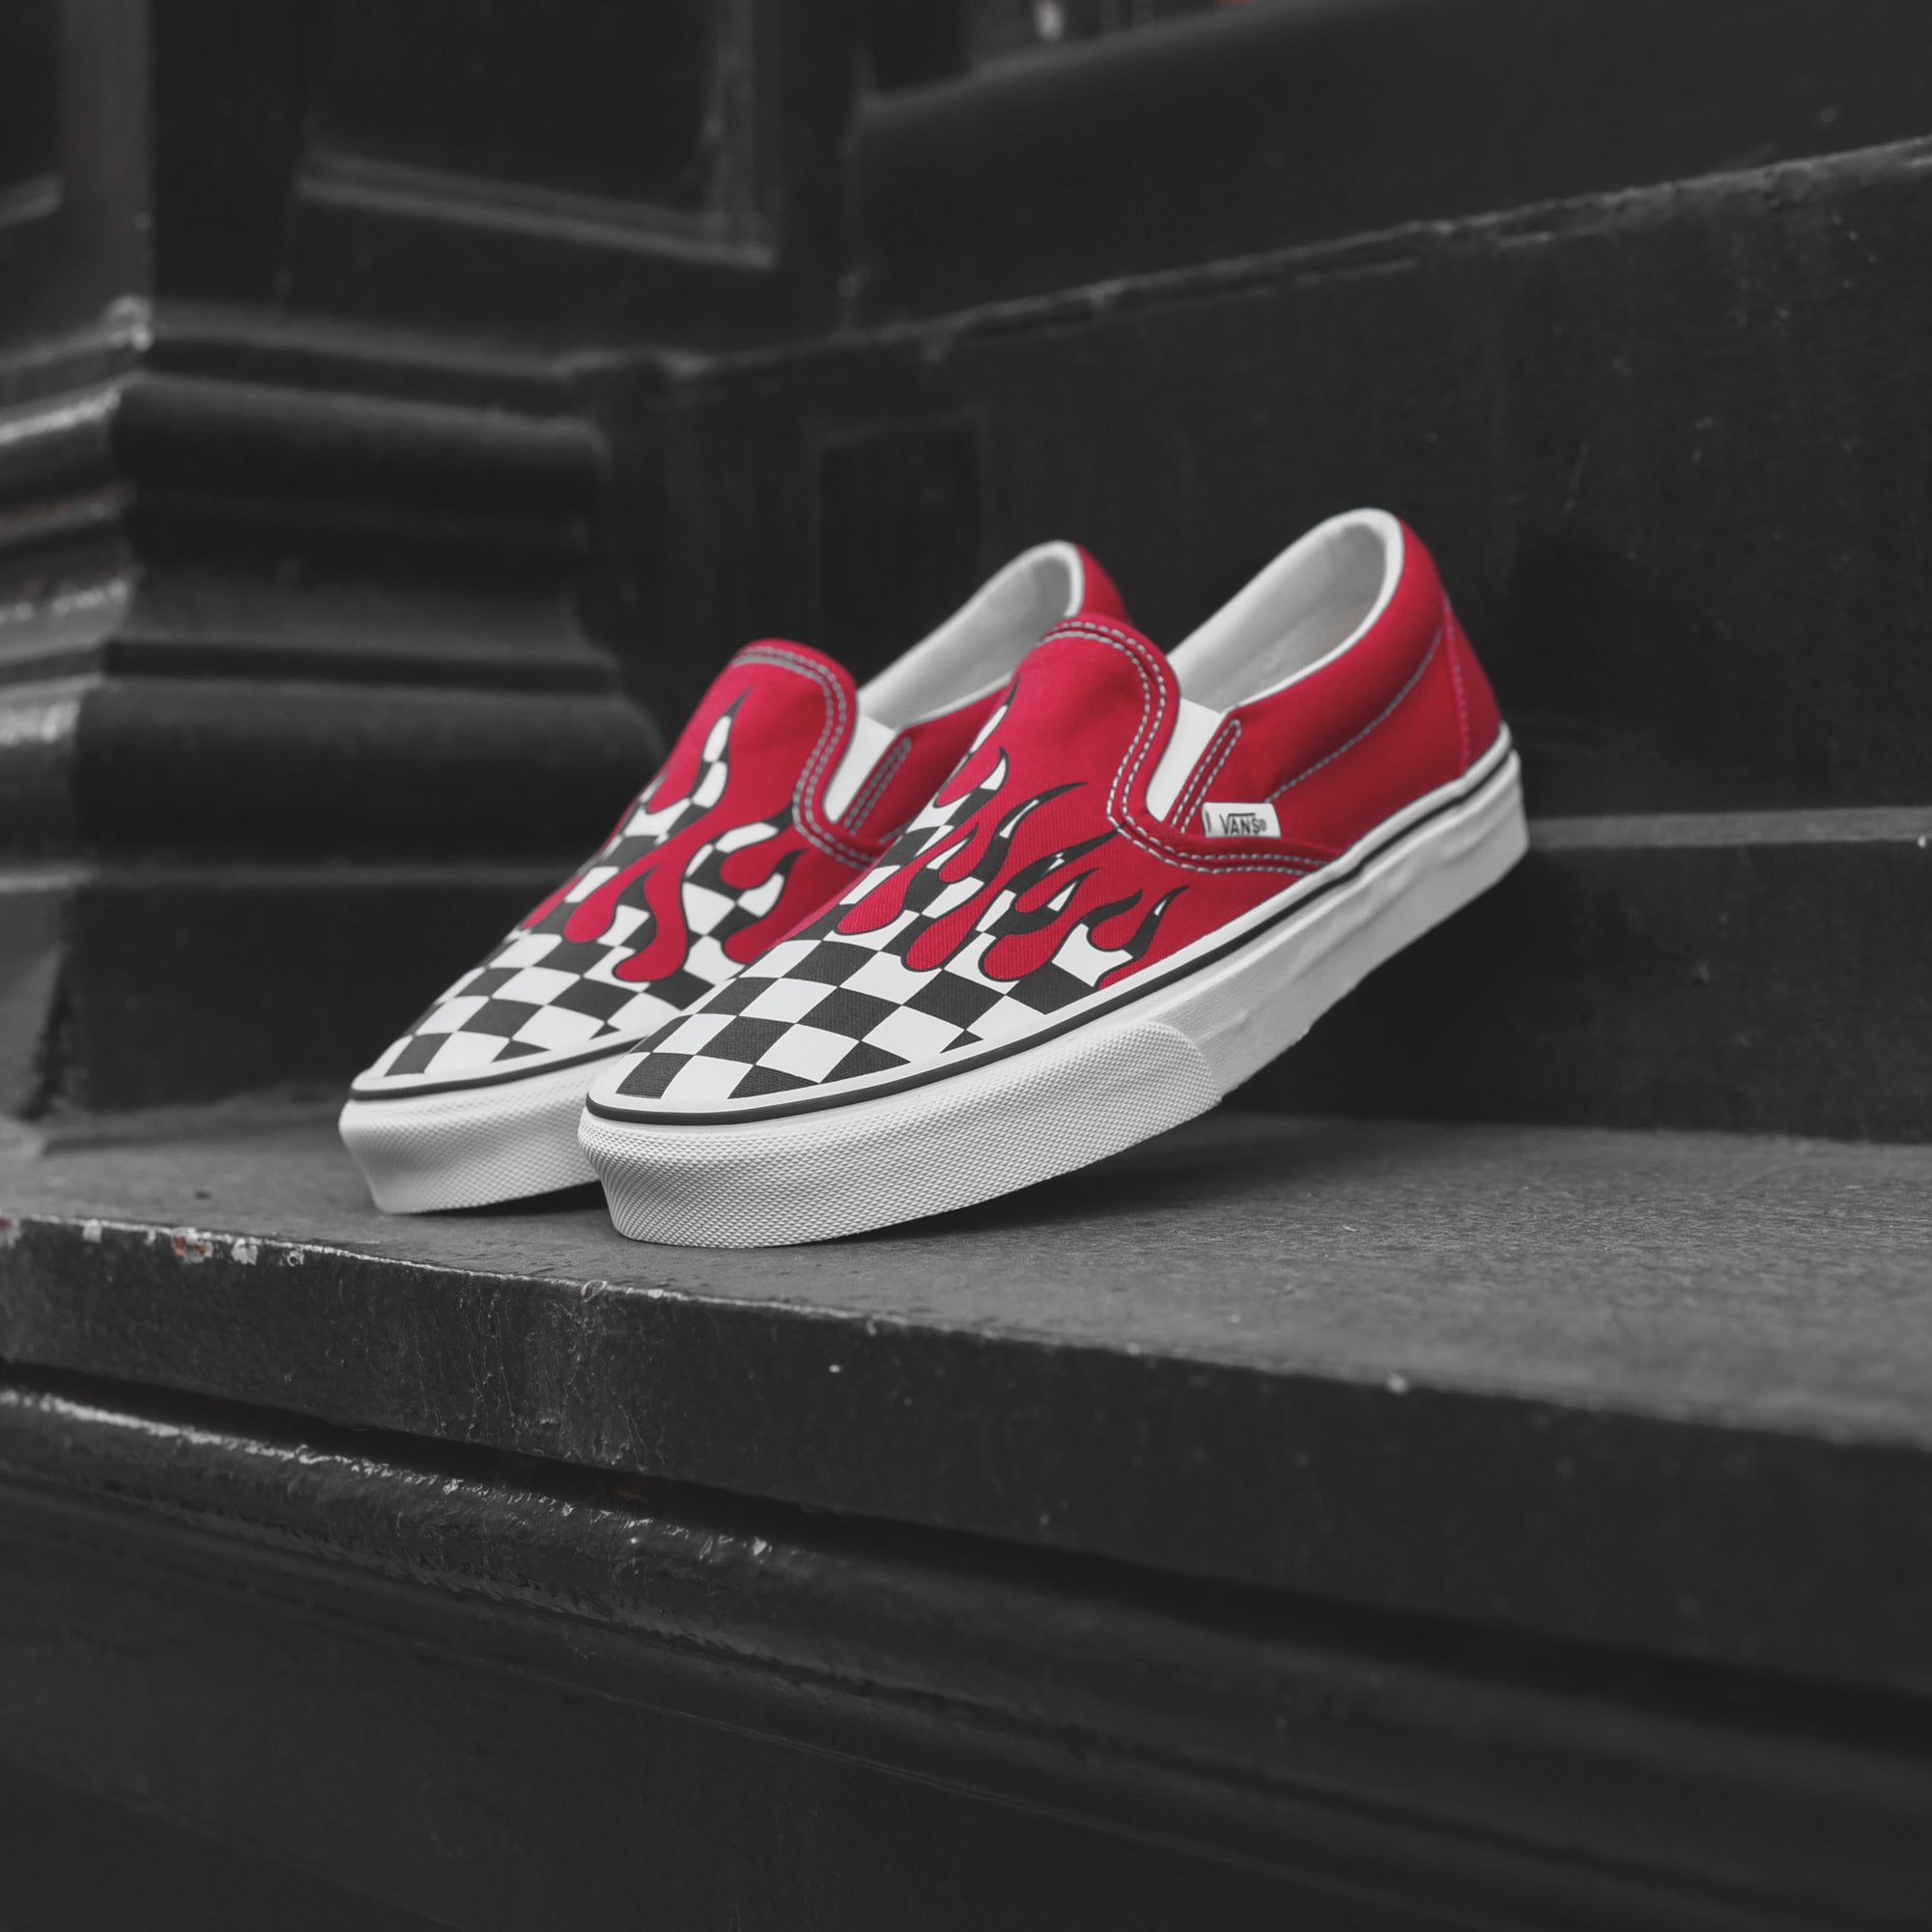 9704aedf40 Vans UA Classic Slip-On - Red   Flame. July 12